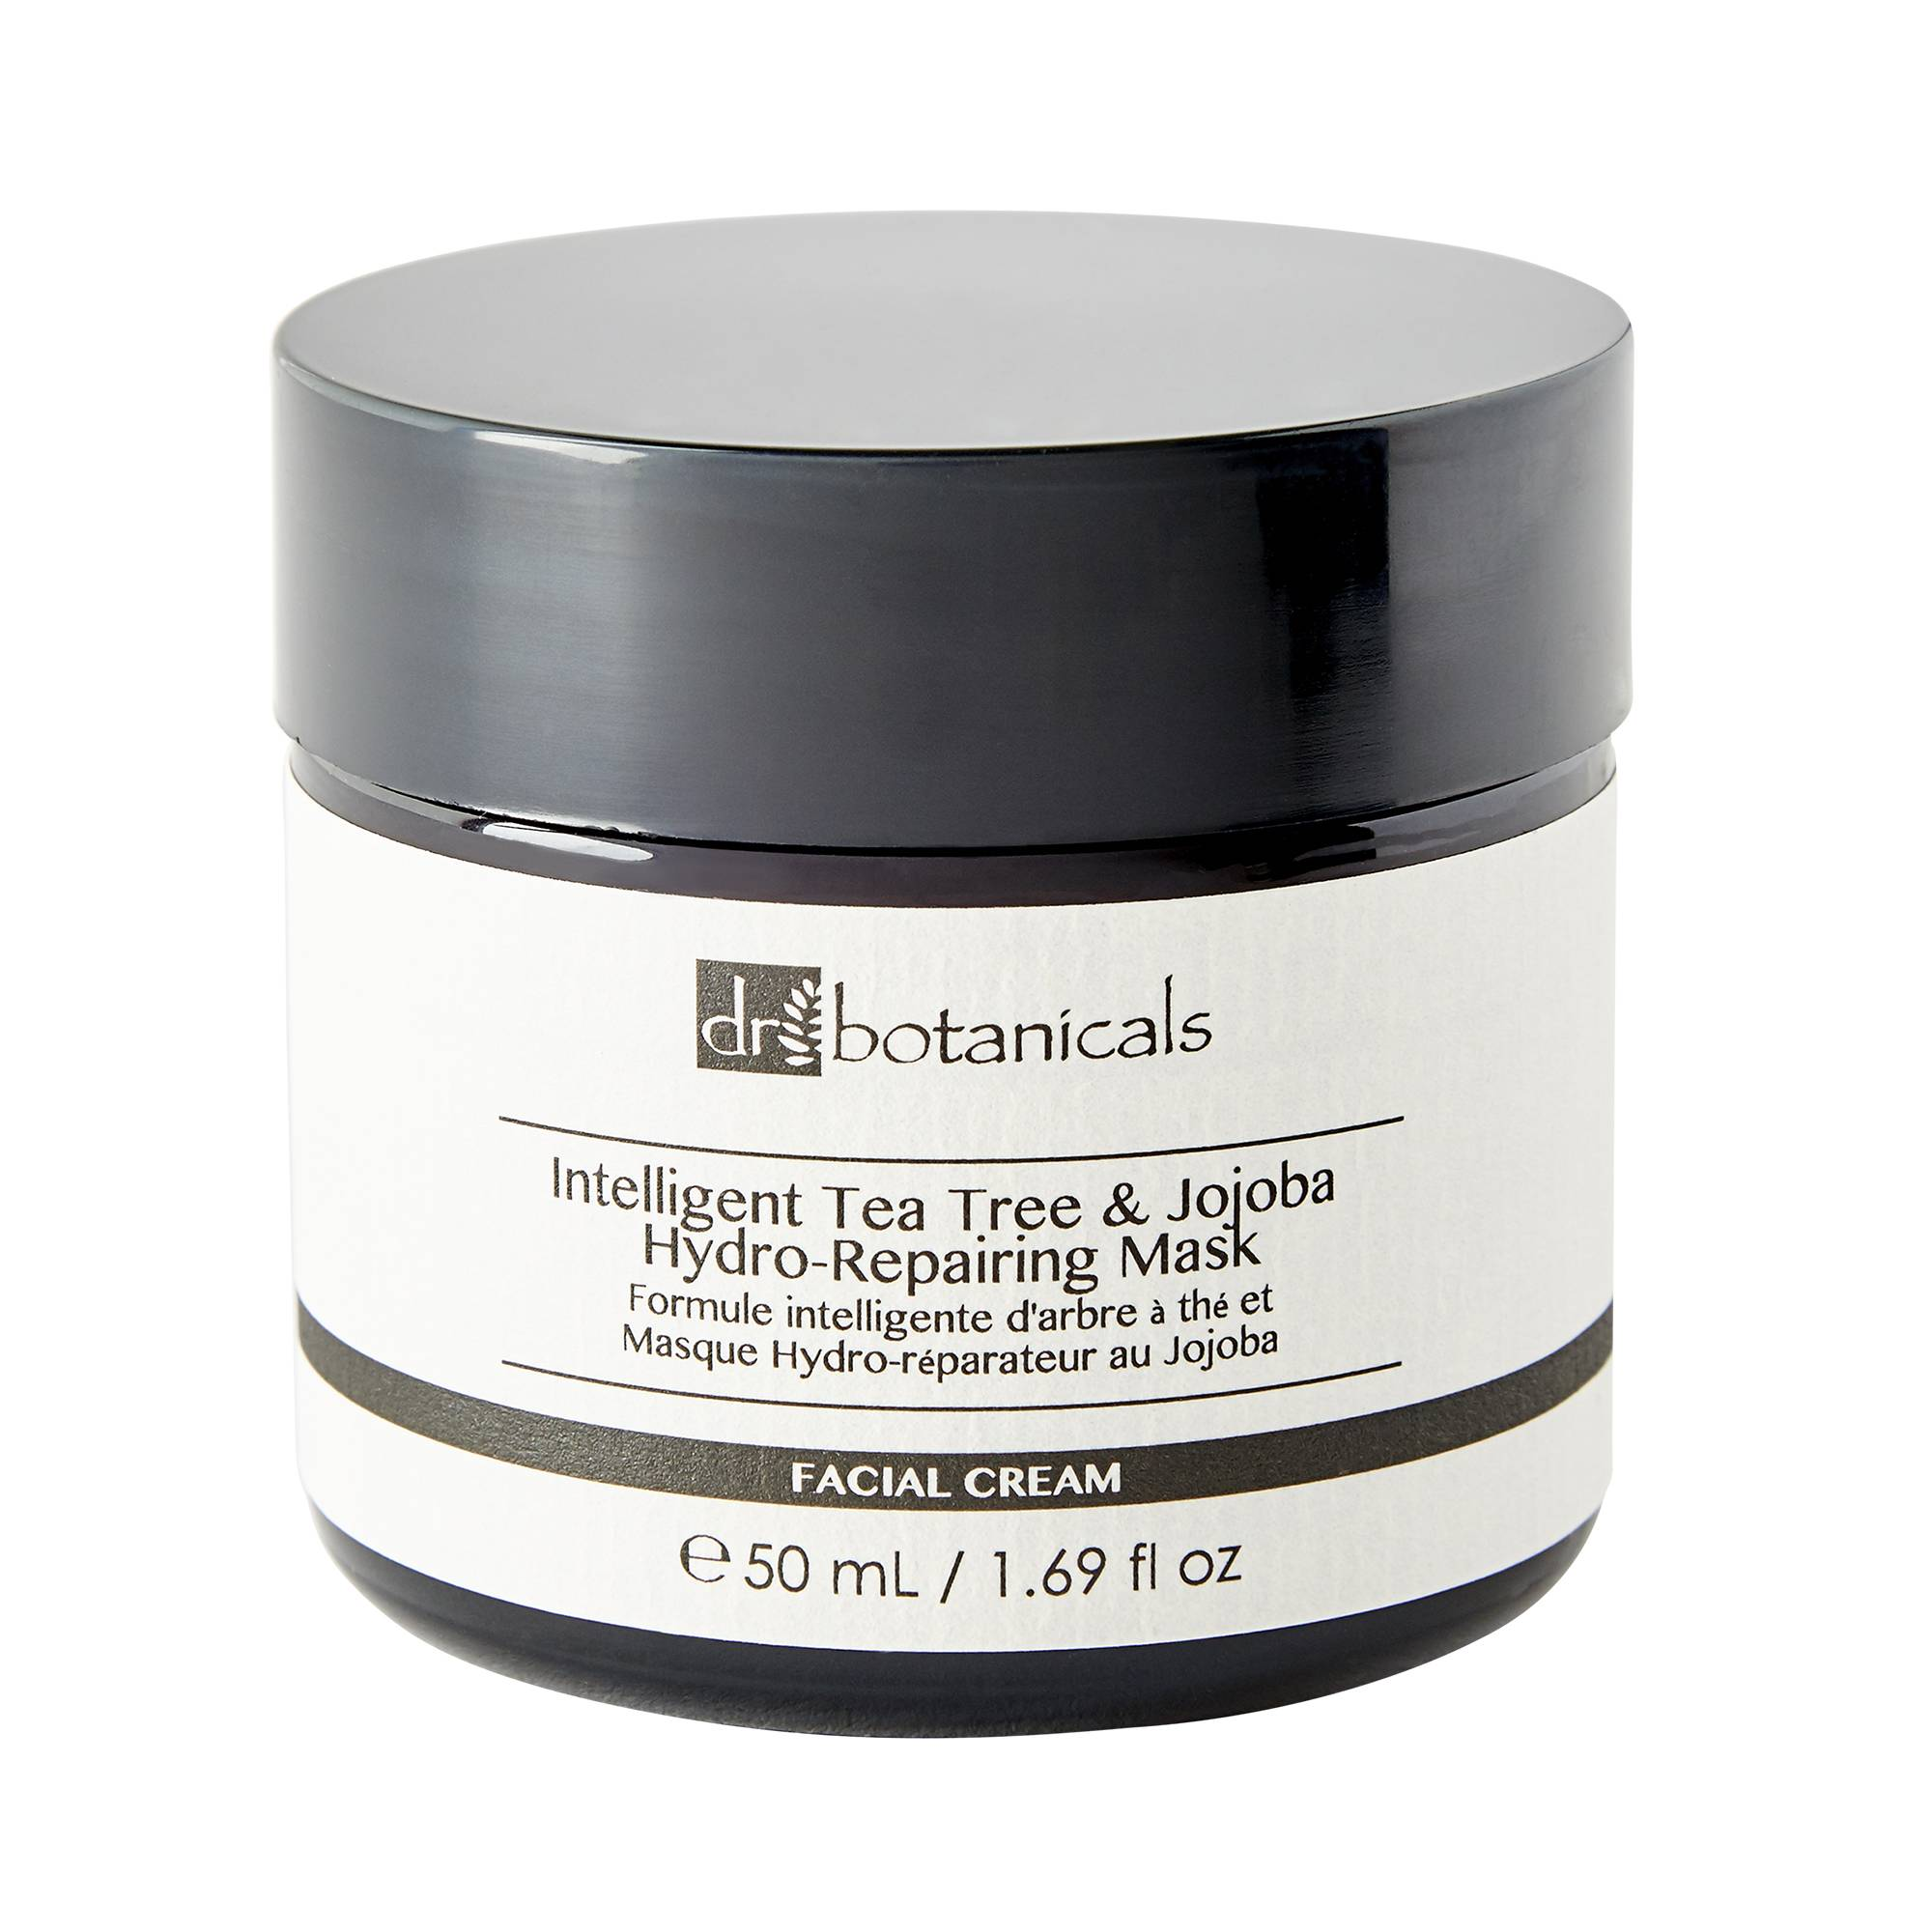 Dr. Botanicals Intelligent Tea tree and Jojoba HydroRepairing Mask